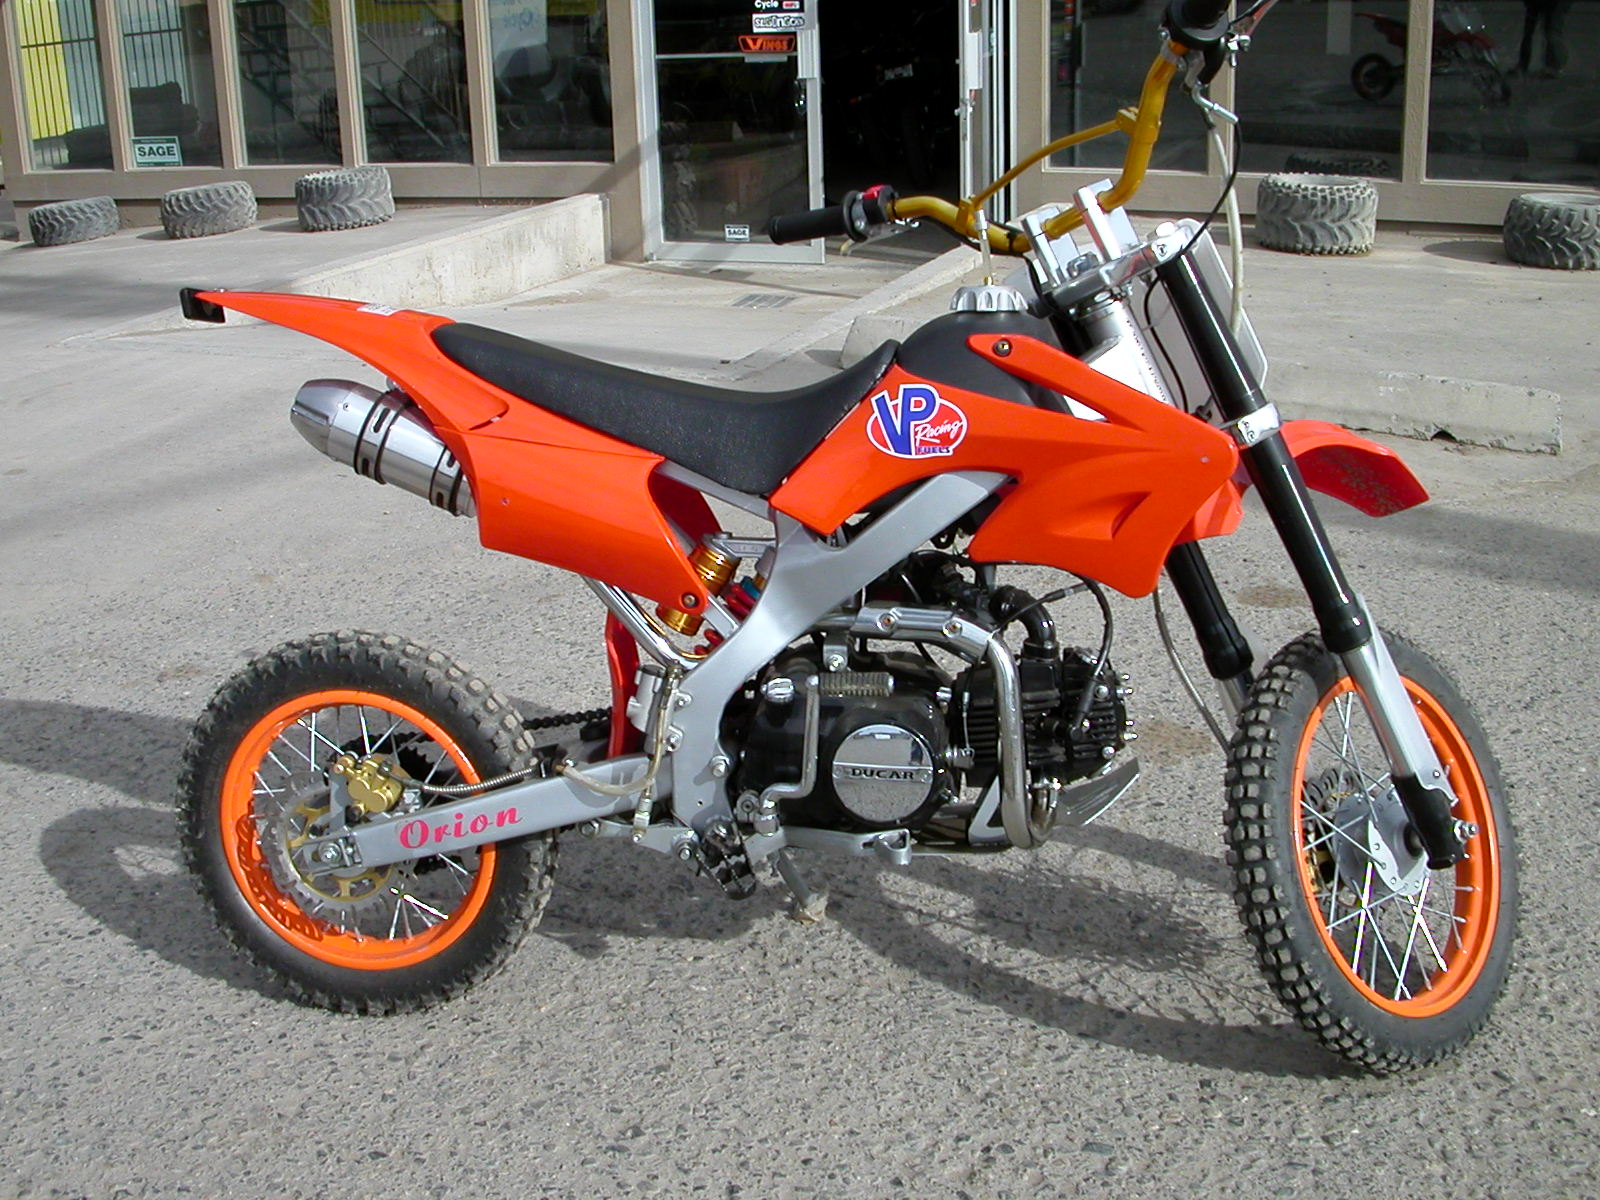 Mini dirt bikes for sale cheap used autos weblog for Uses for dirt